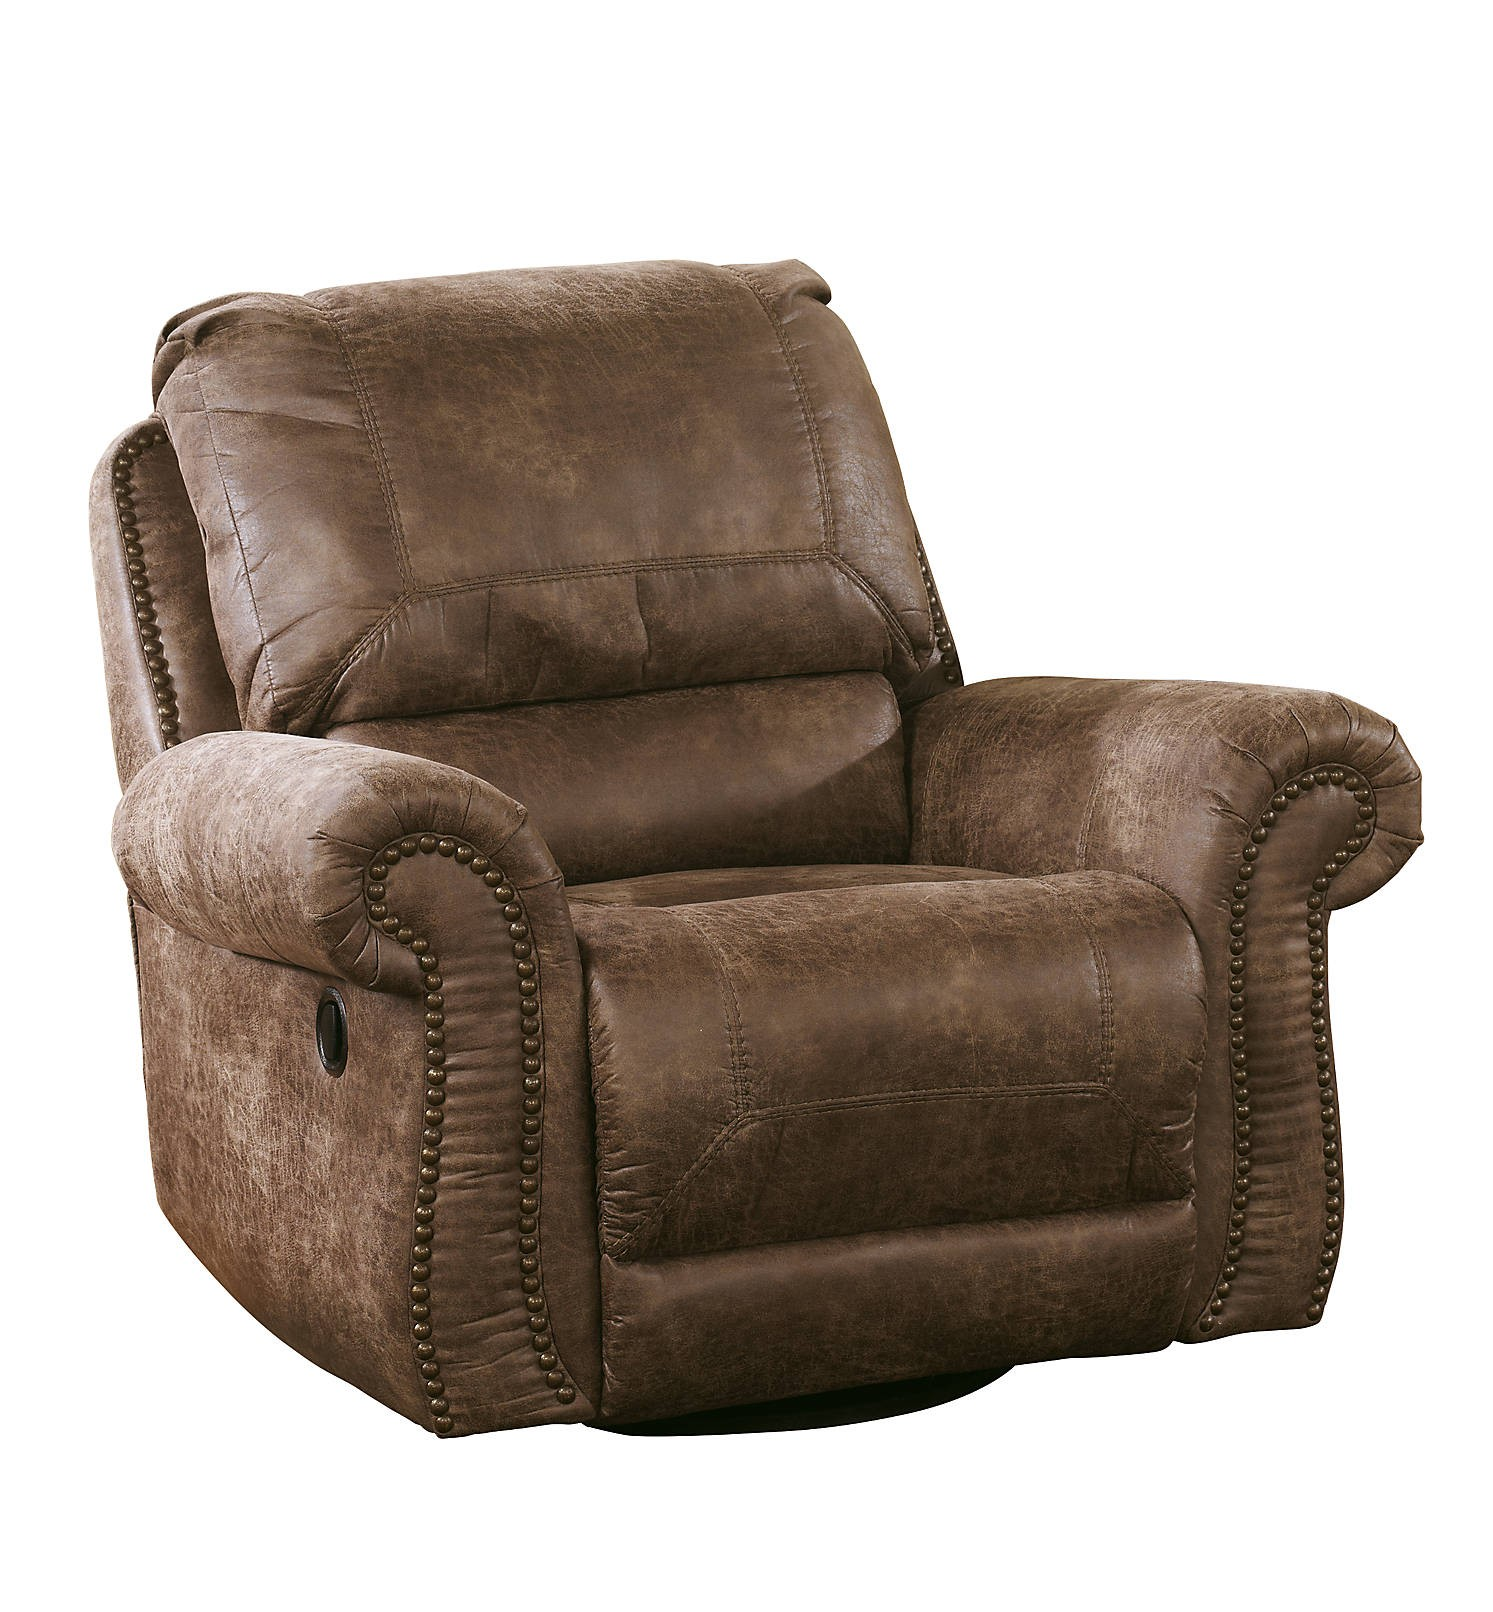 Super Oberson Swivel Glider Recliner Gallery Home Furnishings Alphanode Cool Chair Designs And Ideas Alphanodeonline